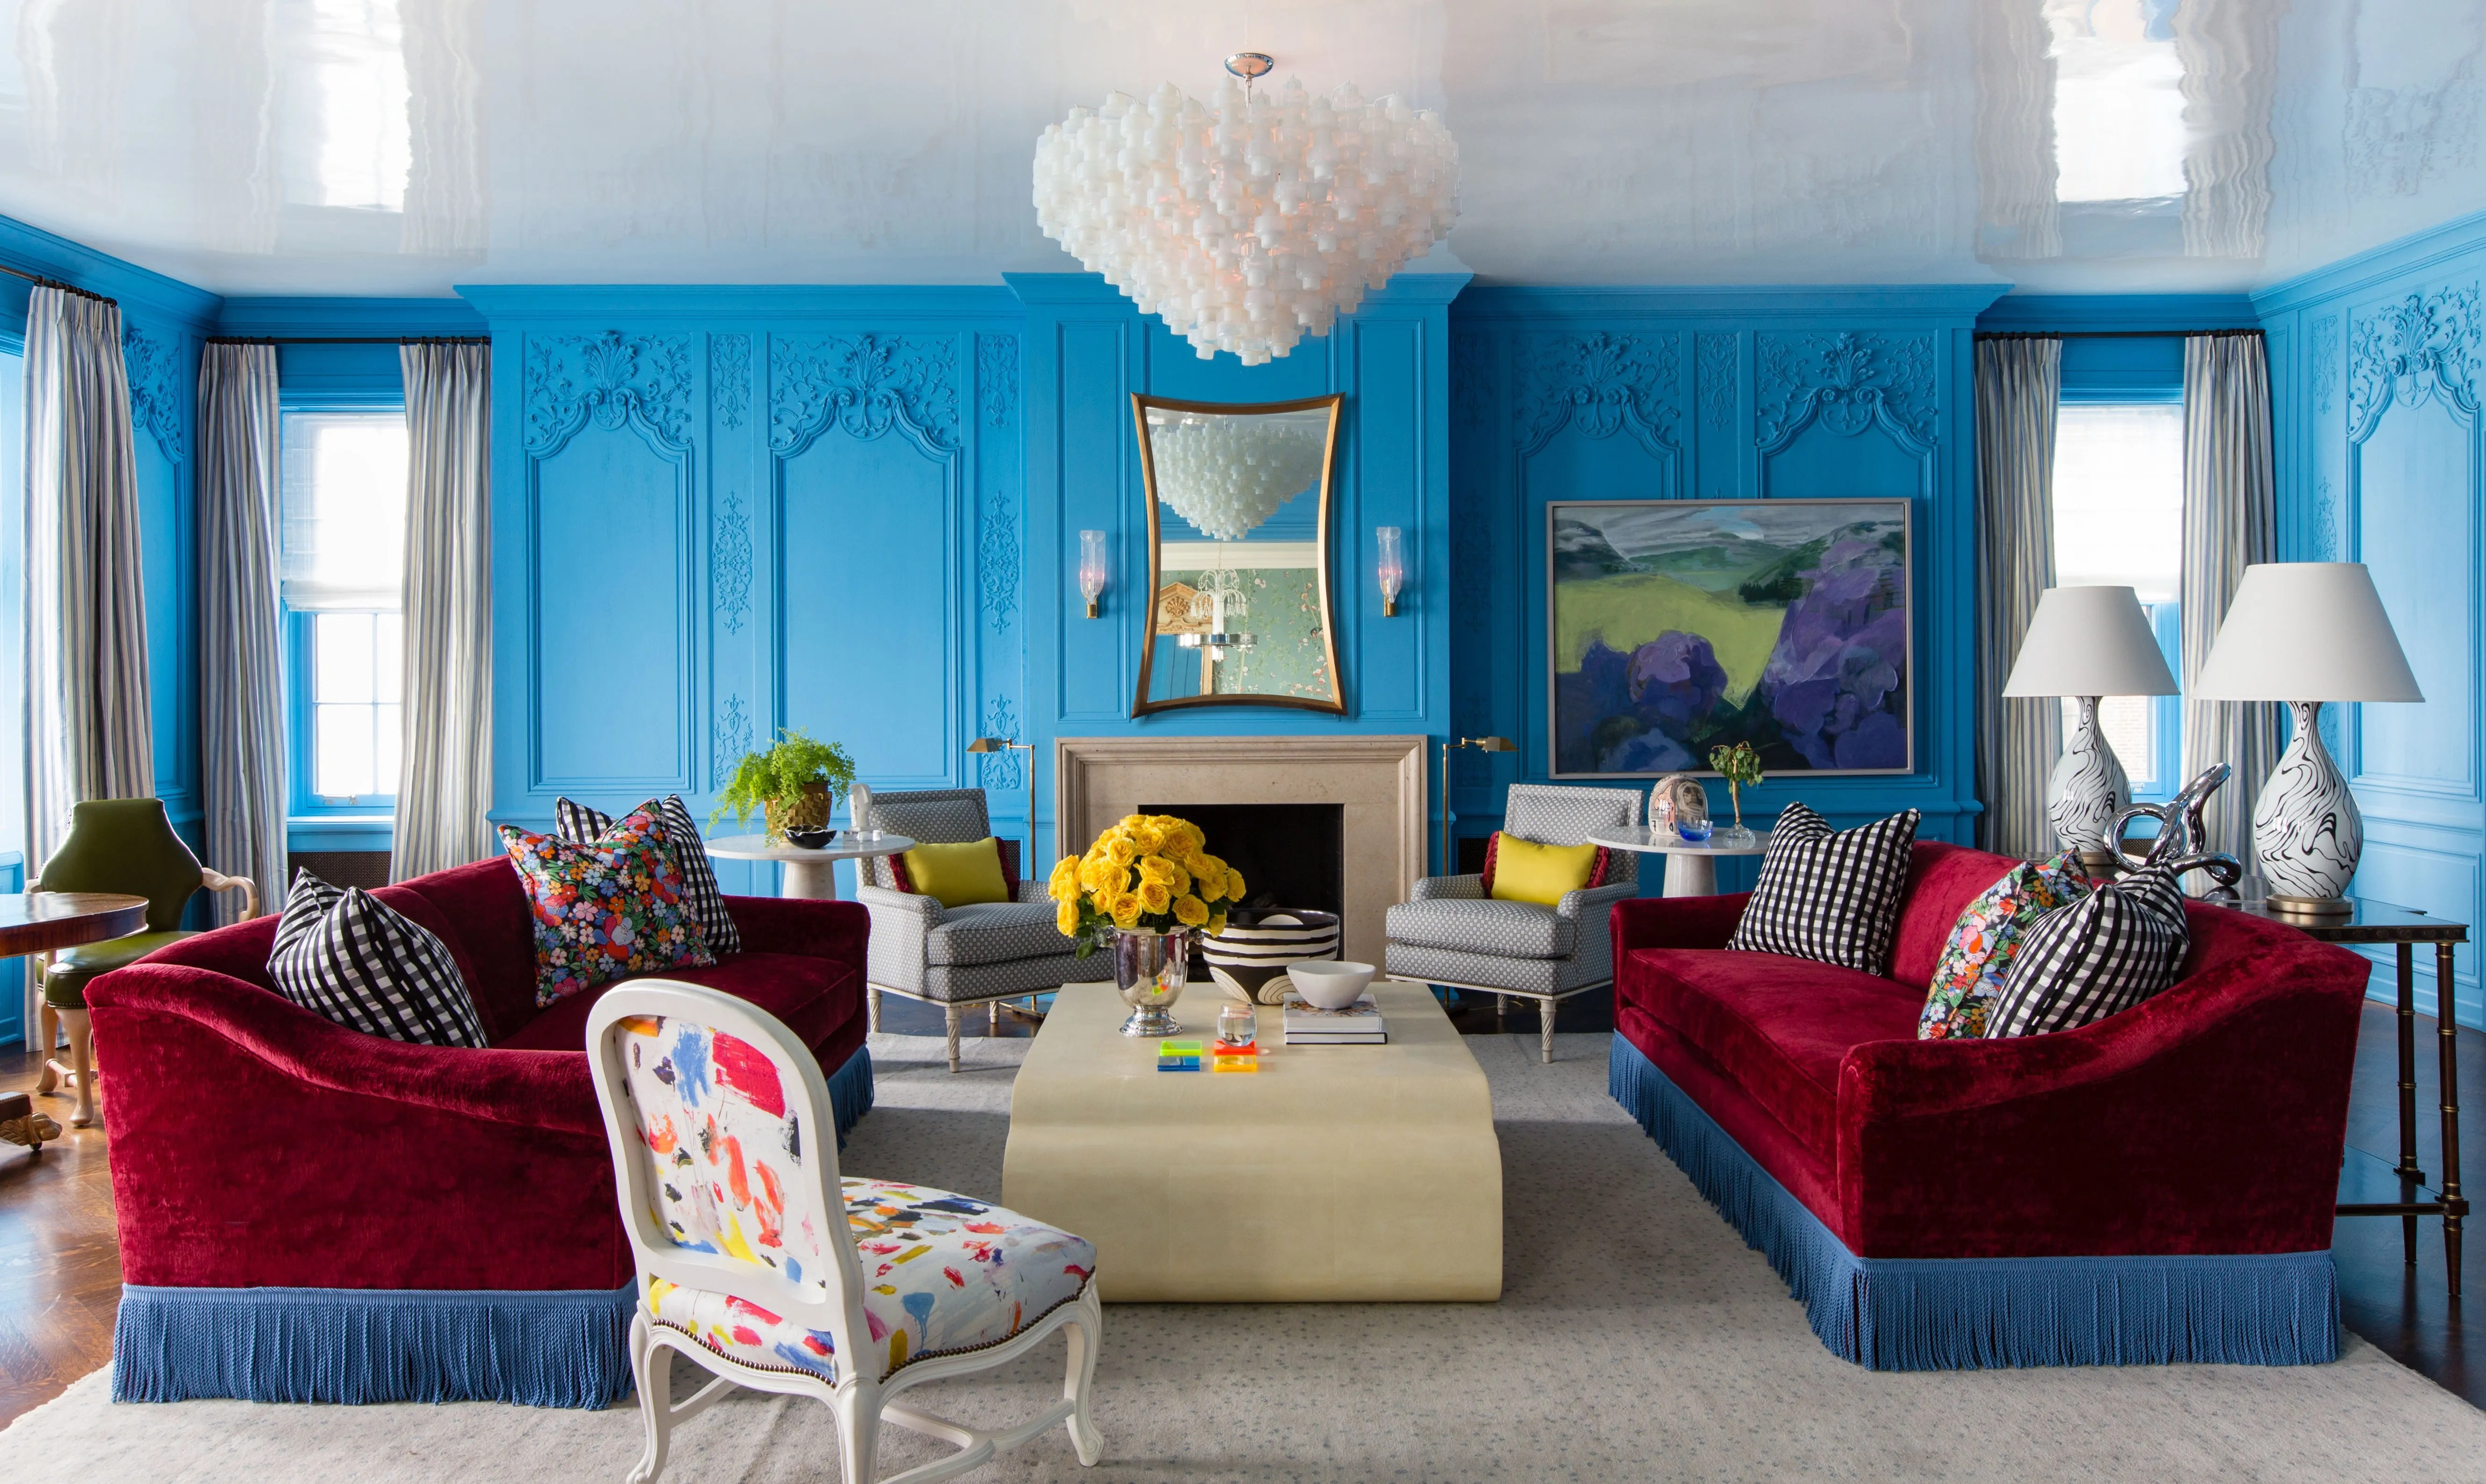 2020 Furniture Trends We Expect To See Architectural Digest